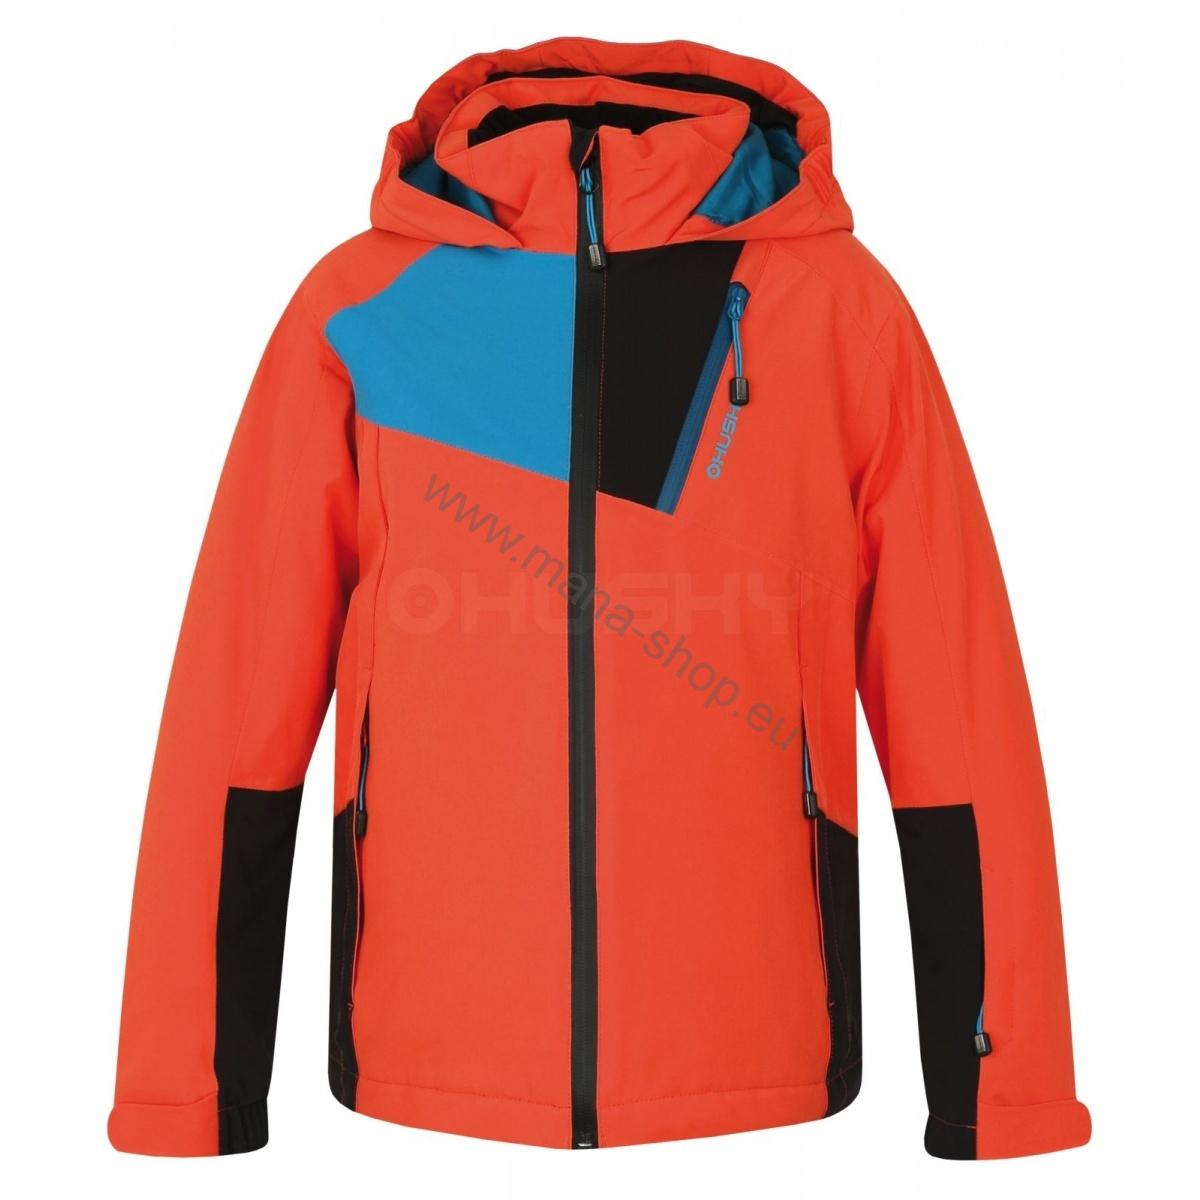 Kinder Skijacke ZAWI JUNIOR orange